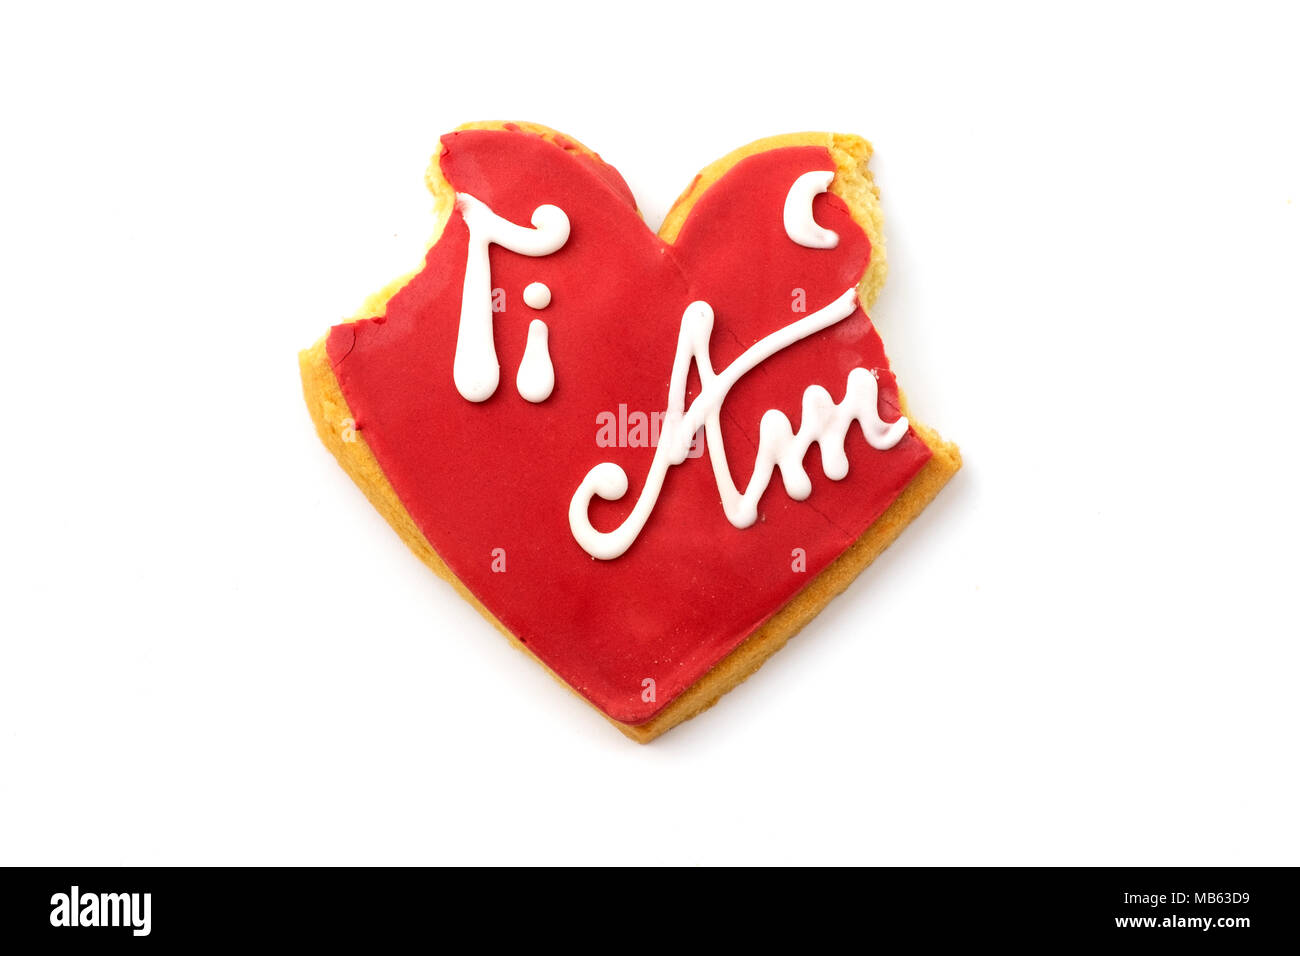 Bitten 'Ti amo' (i love you) cookie on a white background - Stock Image